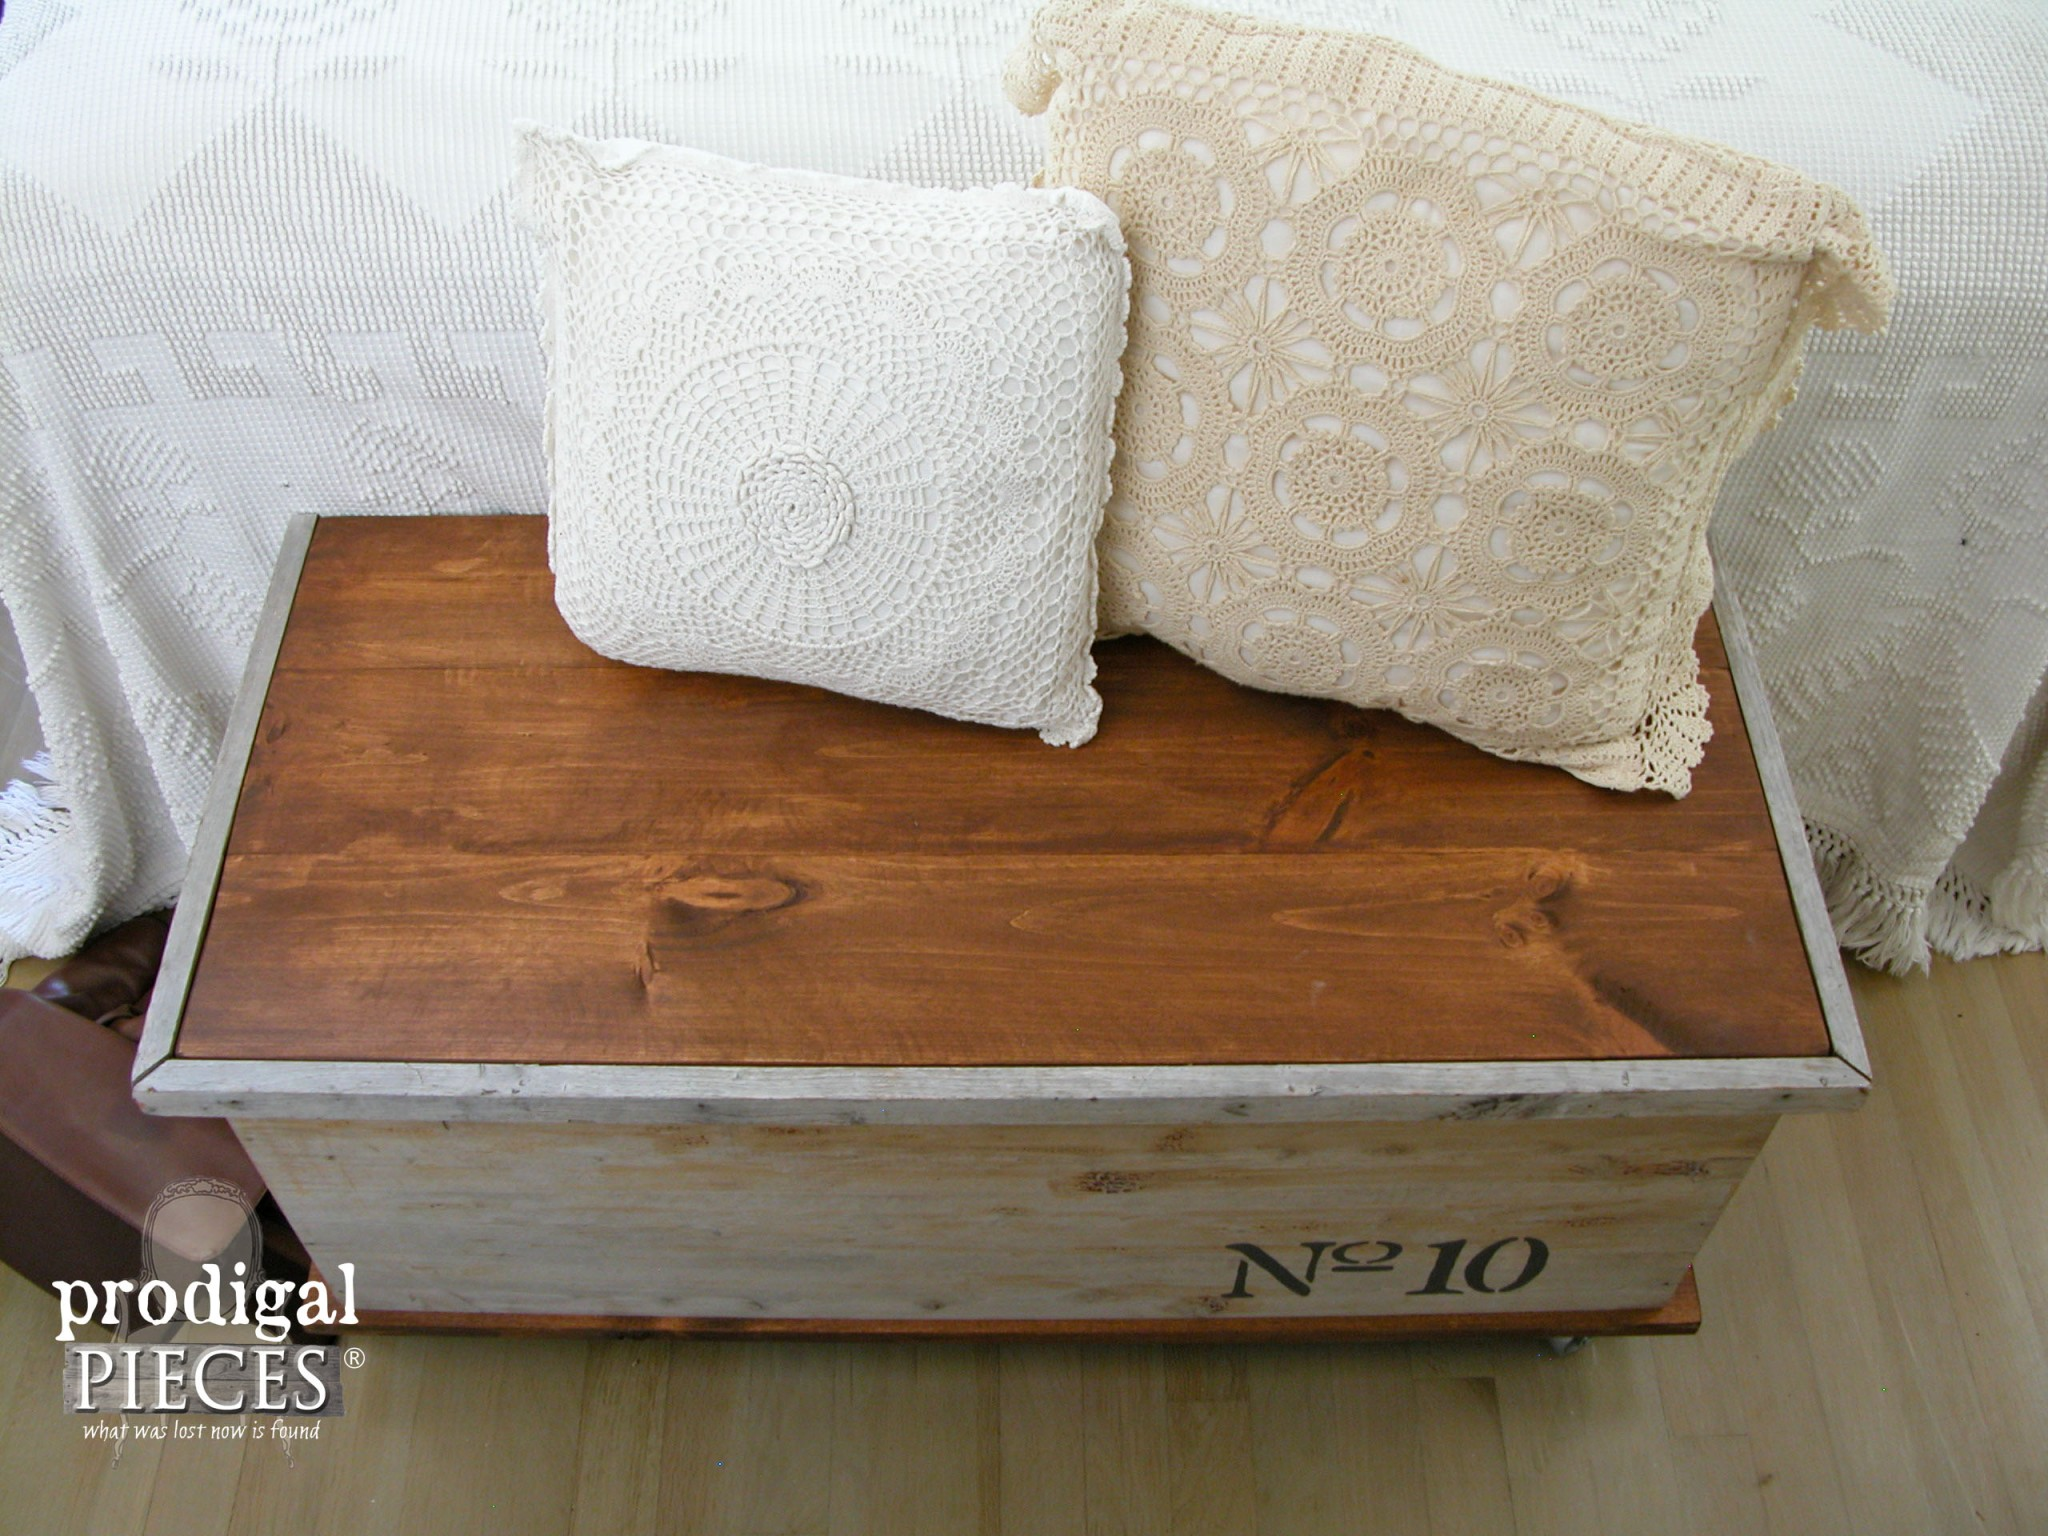 Top of Rustic Cedar Chest Made New by Prodigal Pieces | www.prodigalpieces.com